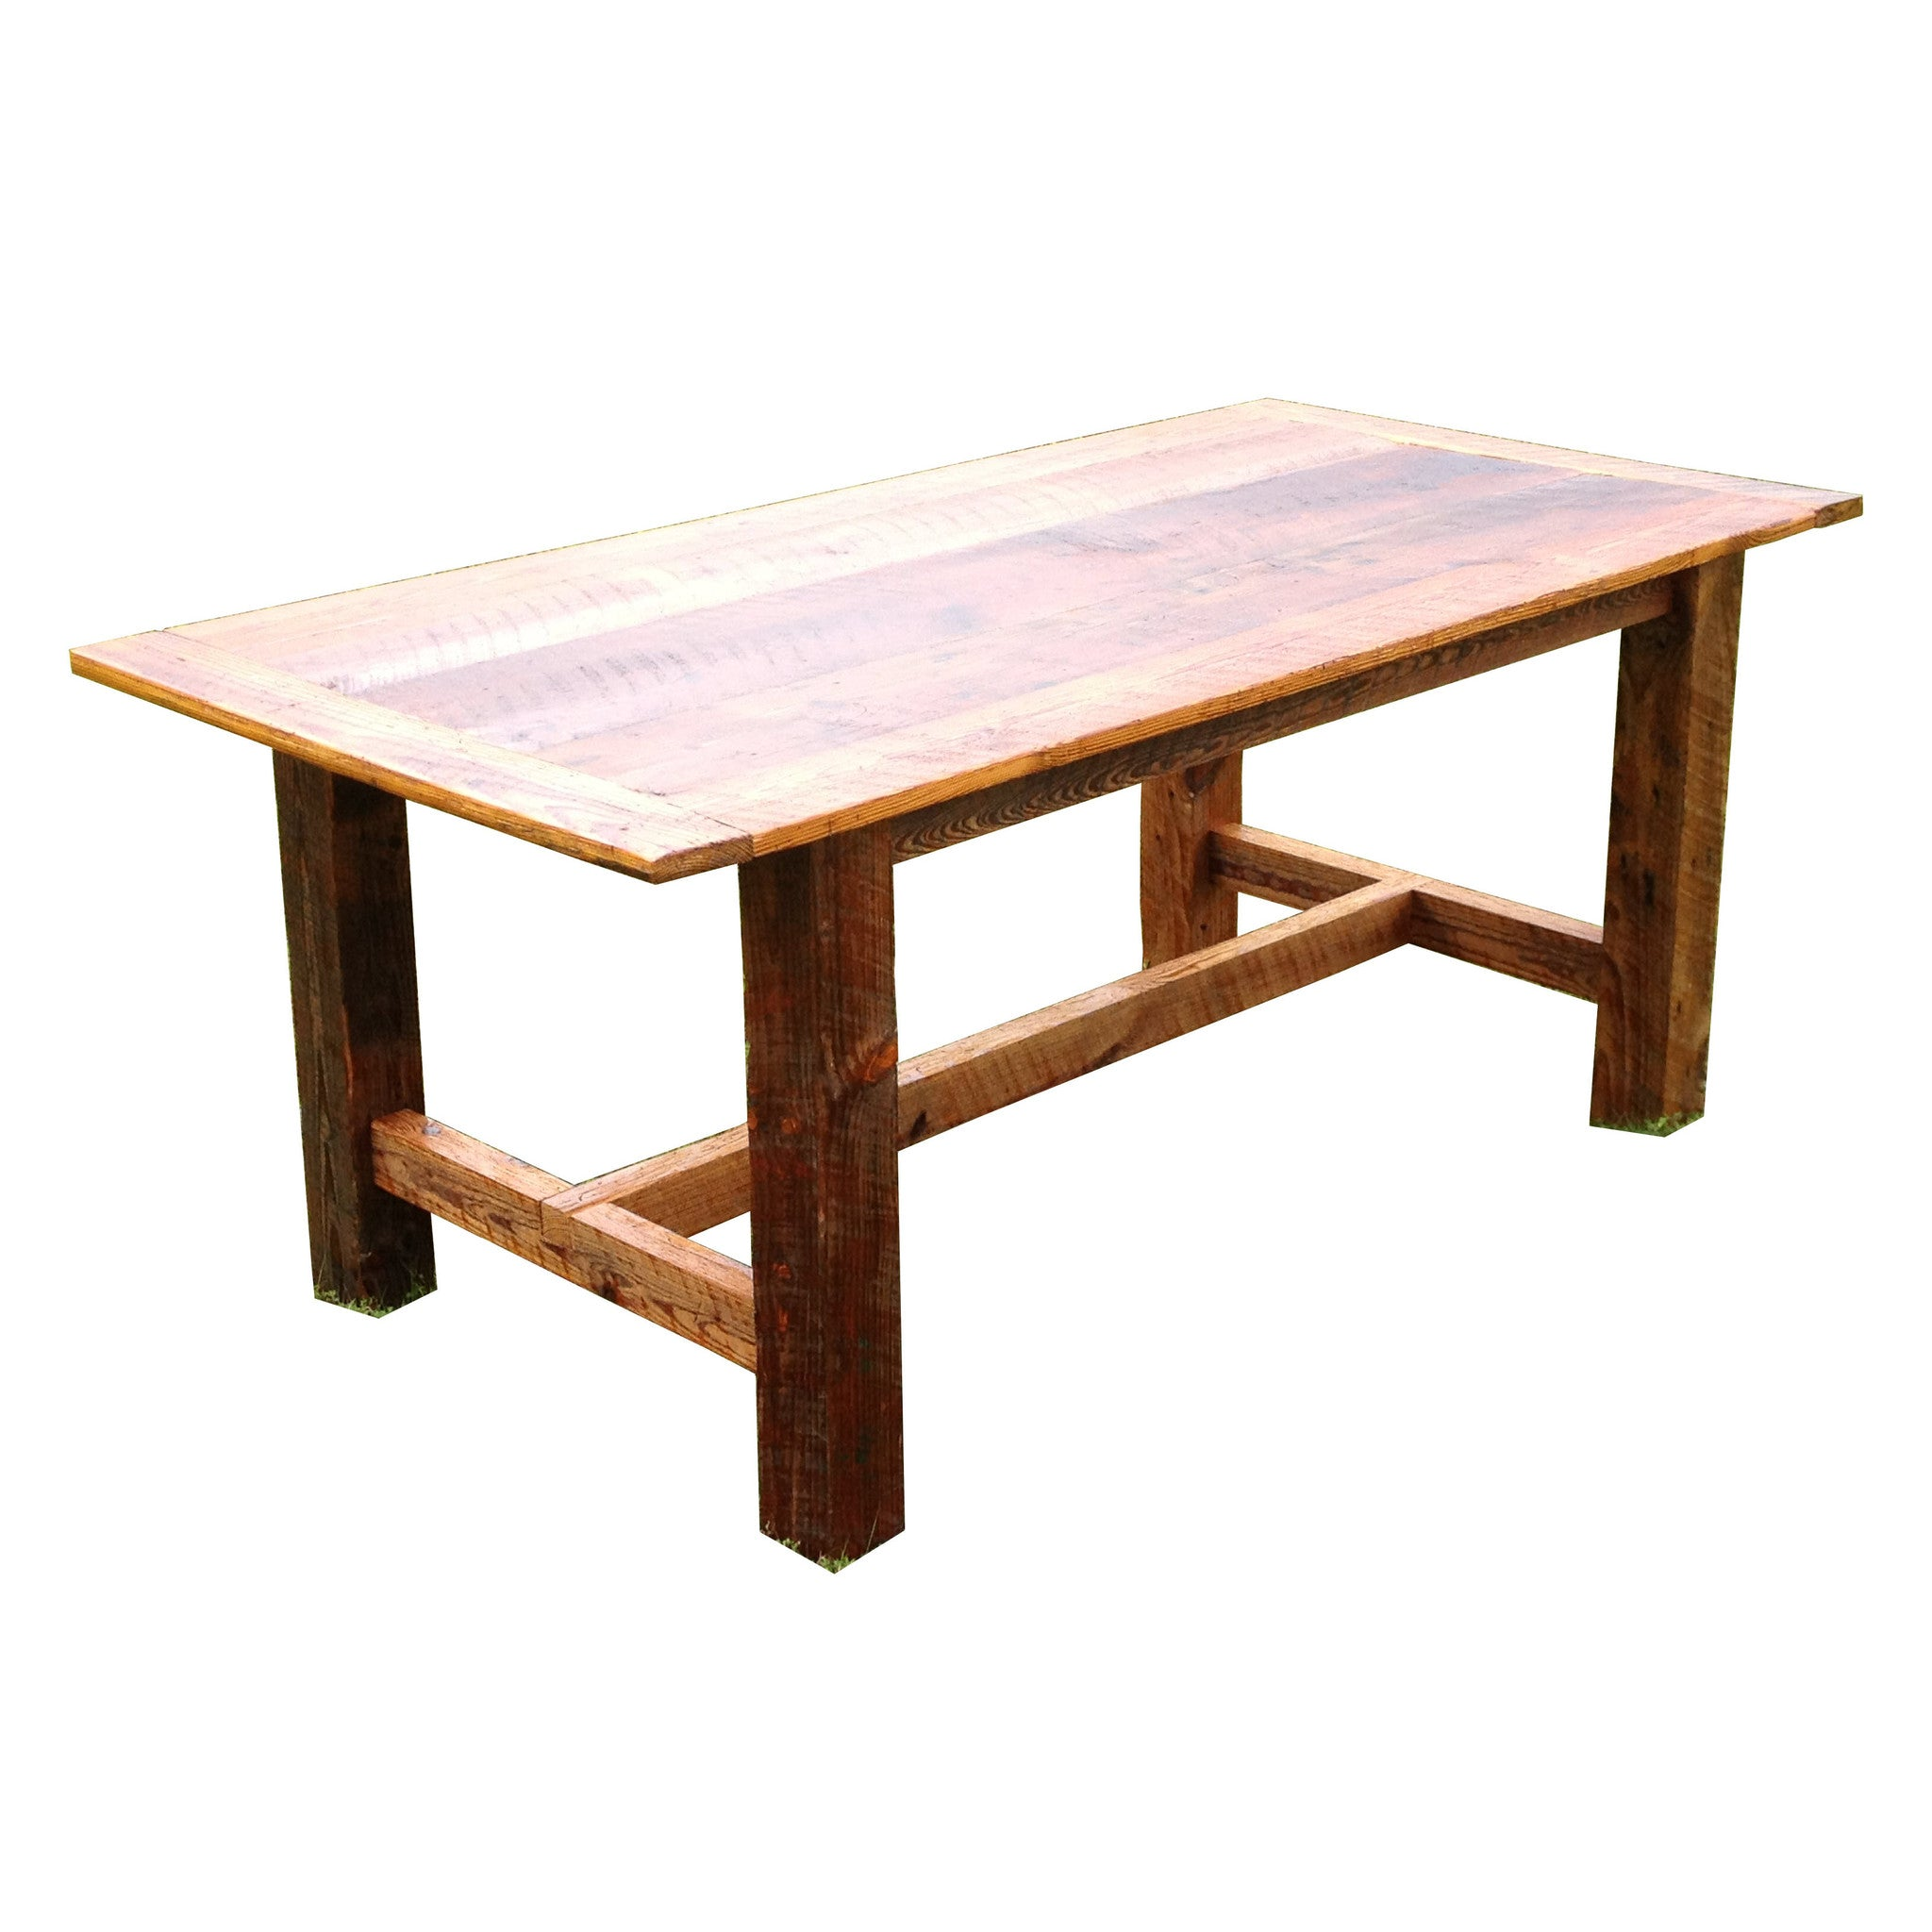 Rusted Nail Reclaimed Wood Dining Room Table - The Spotted Door